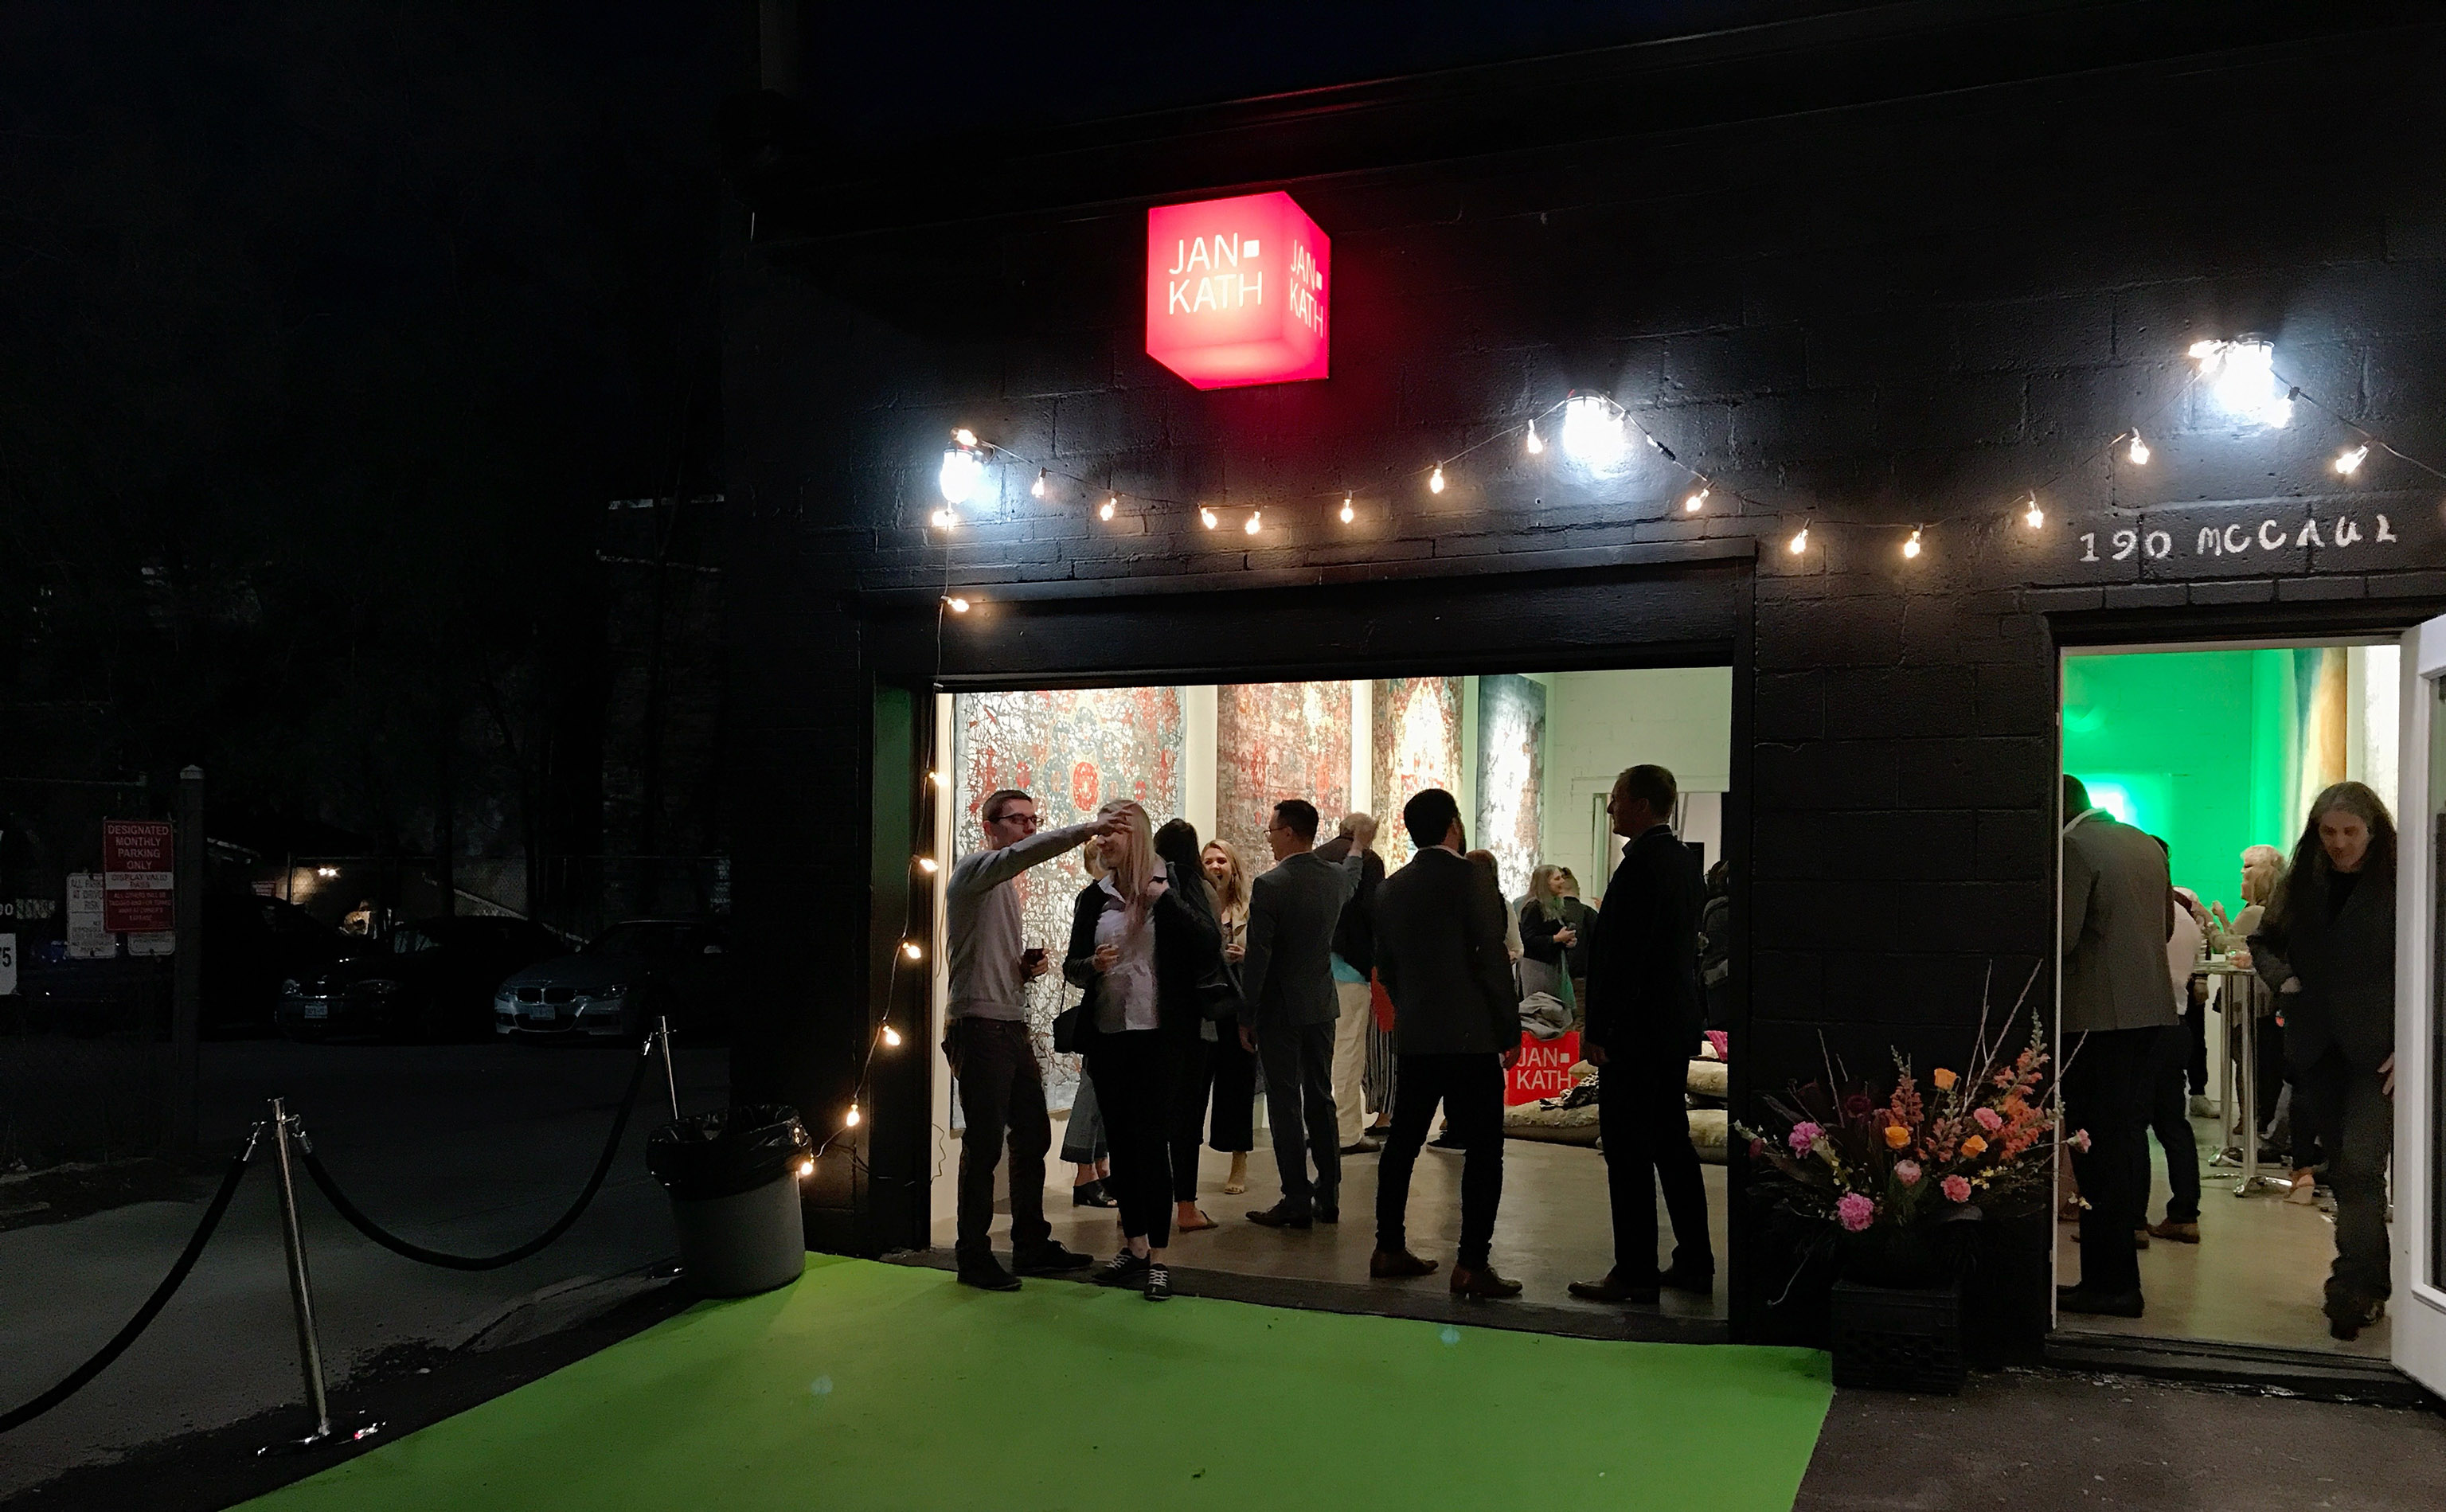 The crowd mingled into the night of Thursday, 10 May 2018 as Jan Kath opened it's latest showroom, it's tenth (Is it?), in Toronto, Ontario, Canada.   Image by The Ruggist.